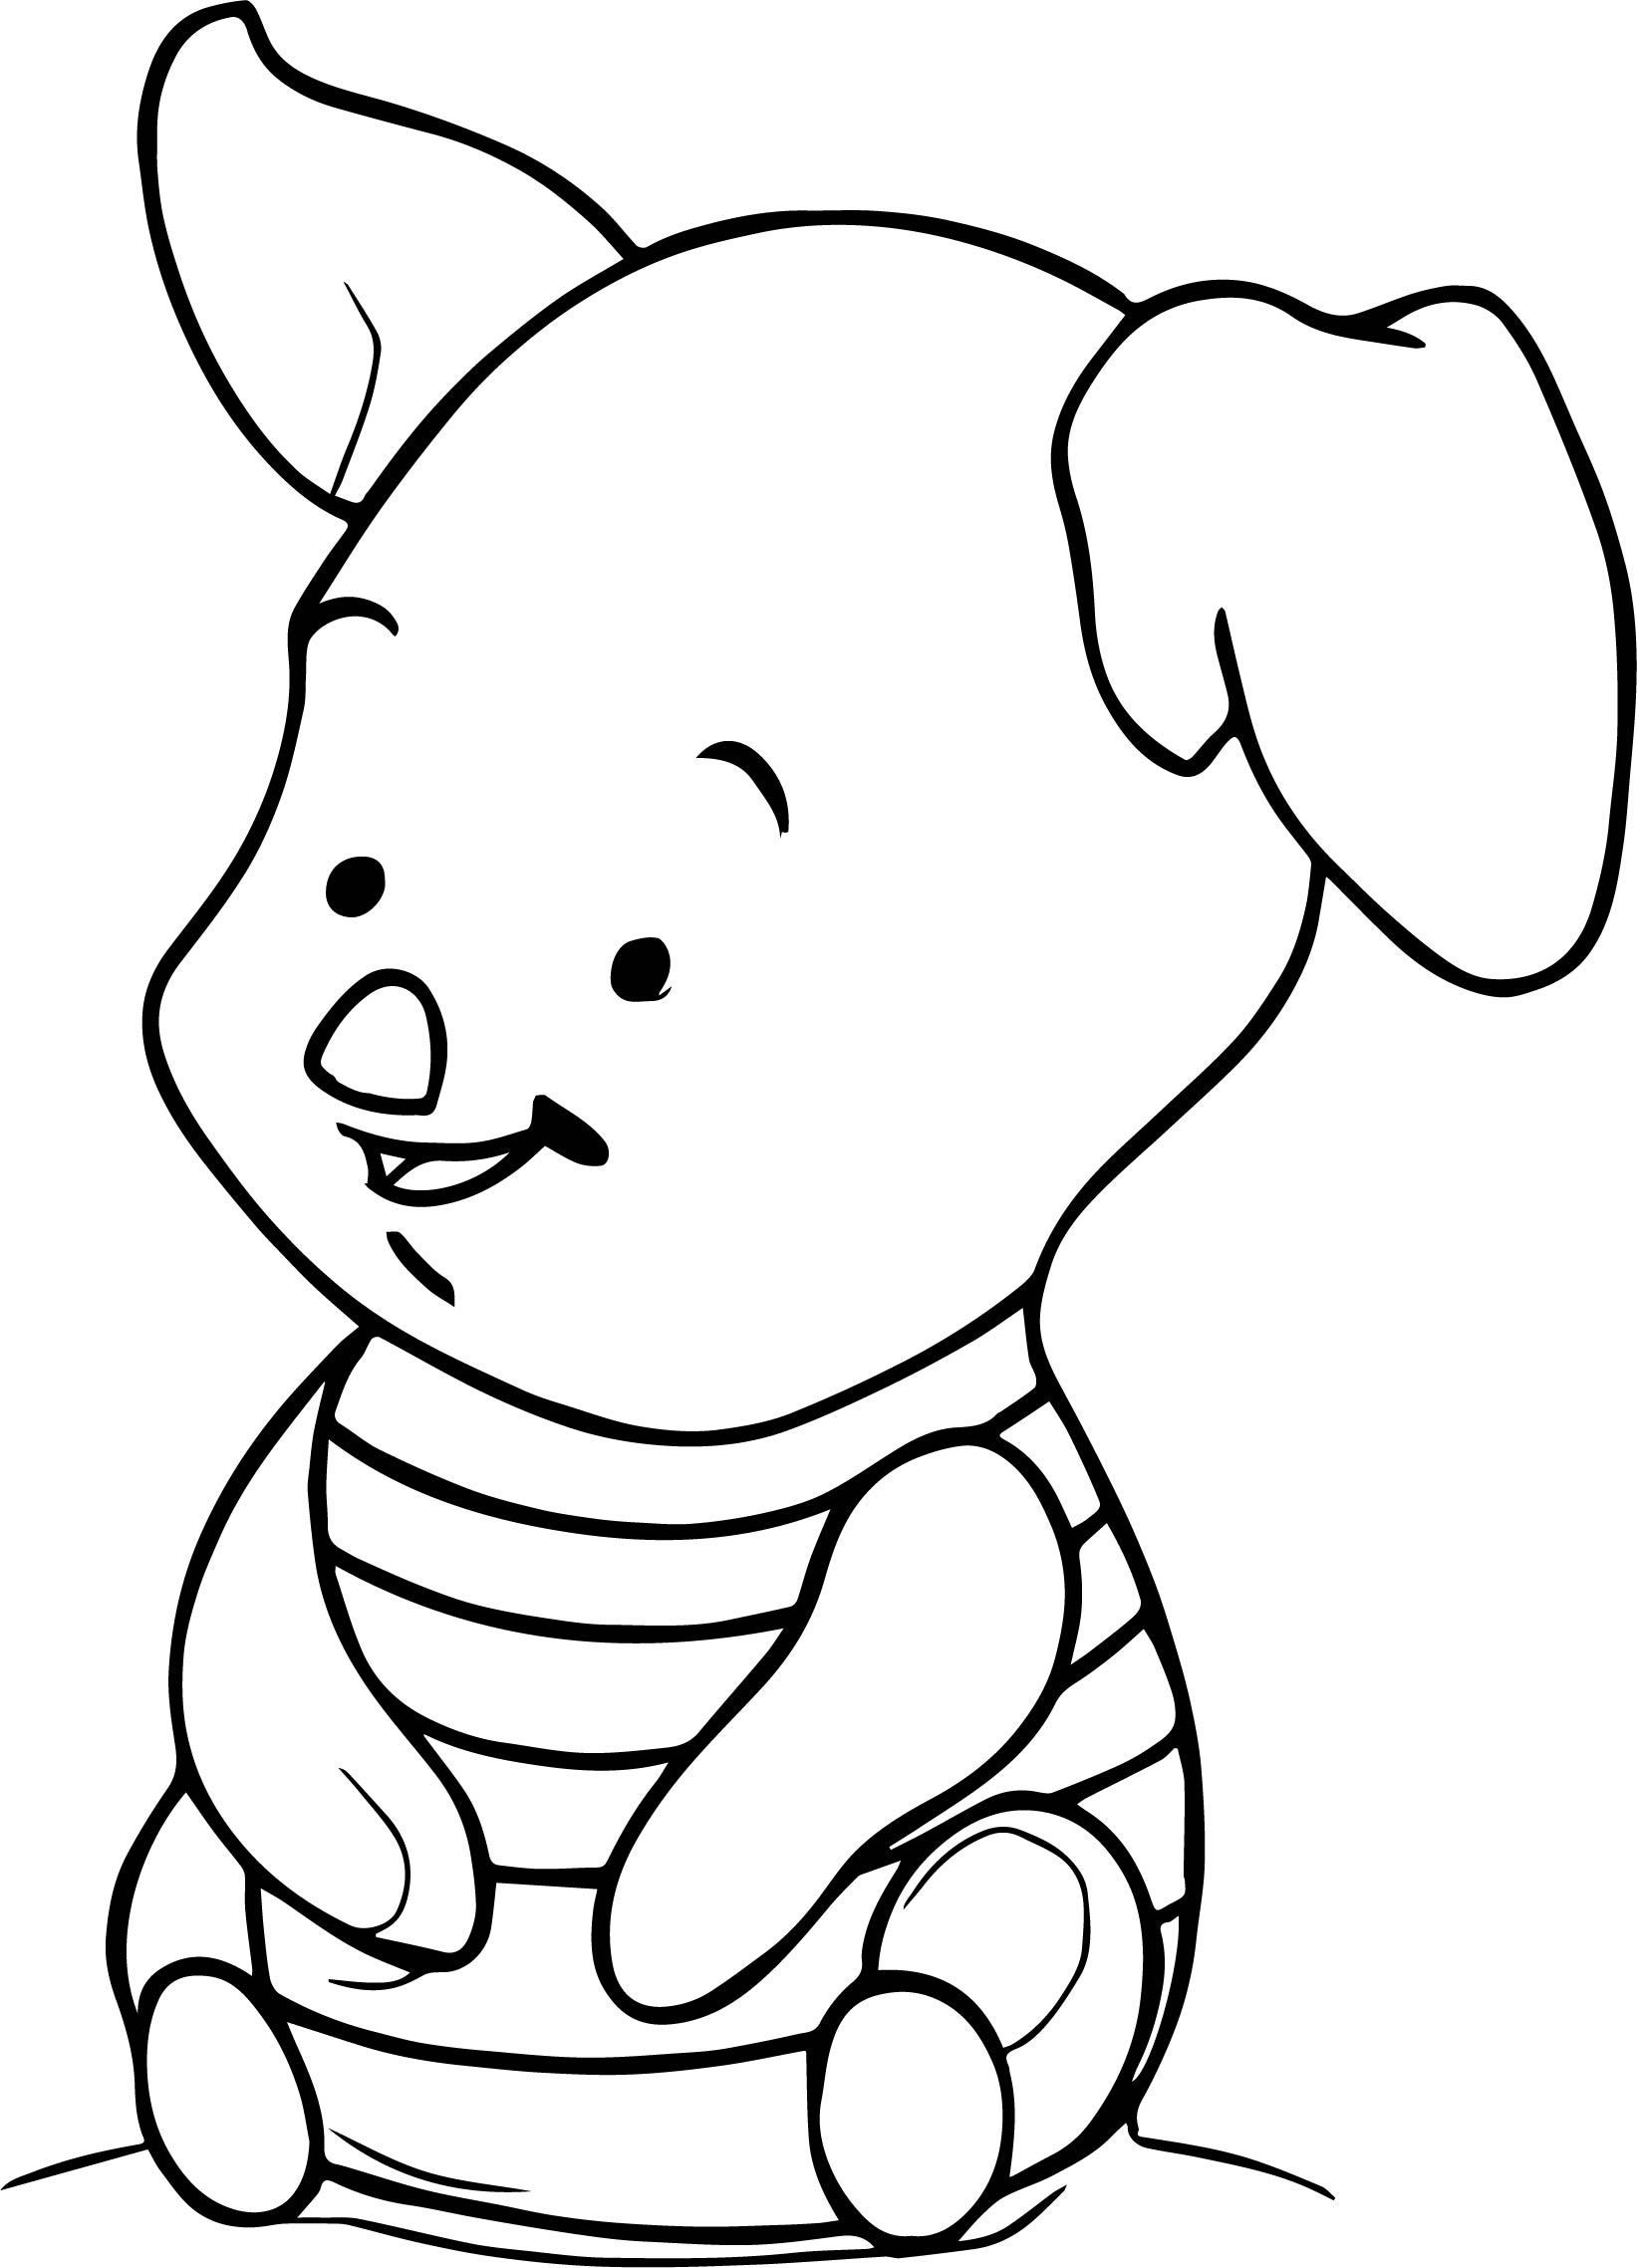 1643x2277 Fascinating How To Draw Baby Piglet Coloring Page Wecoloringpage